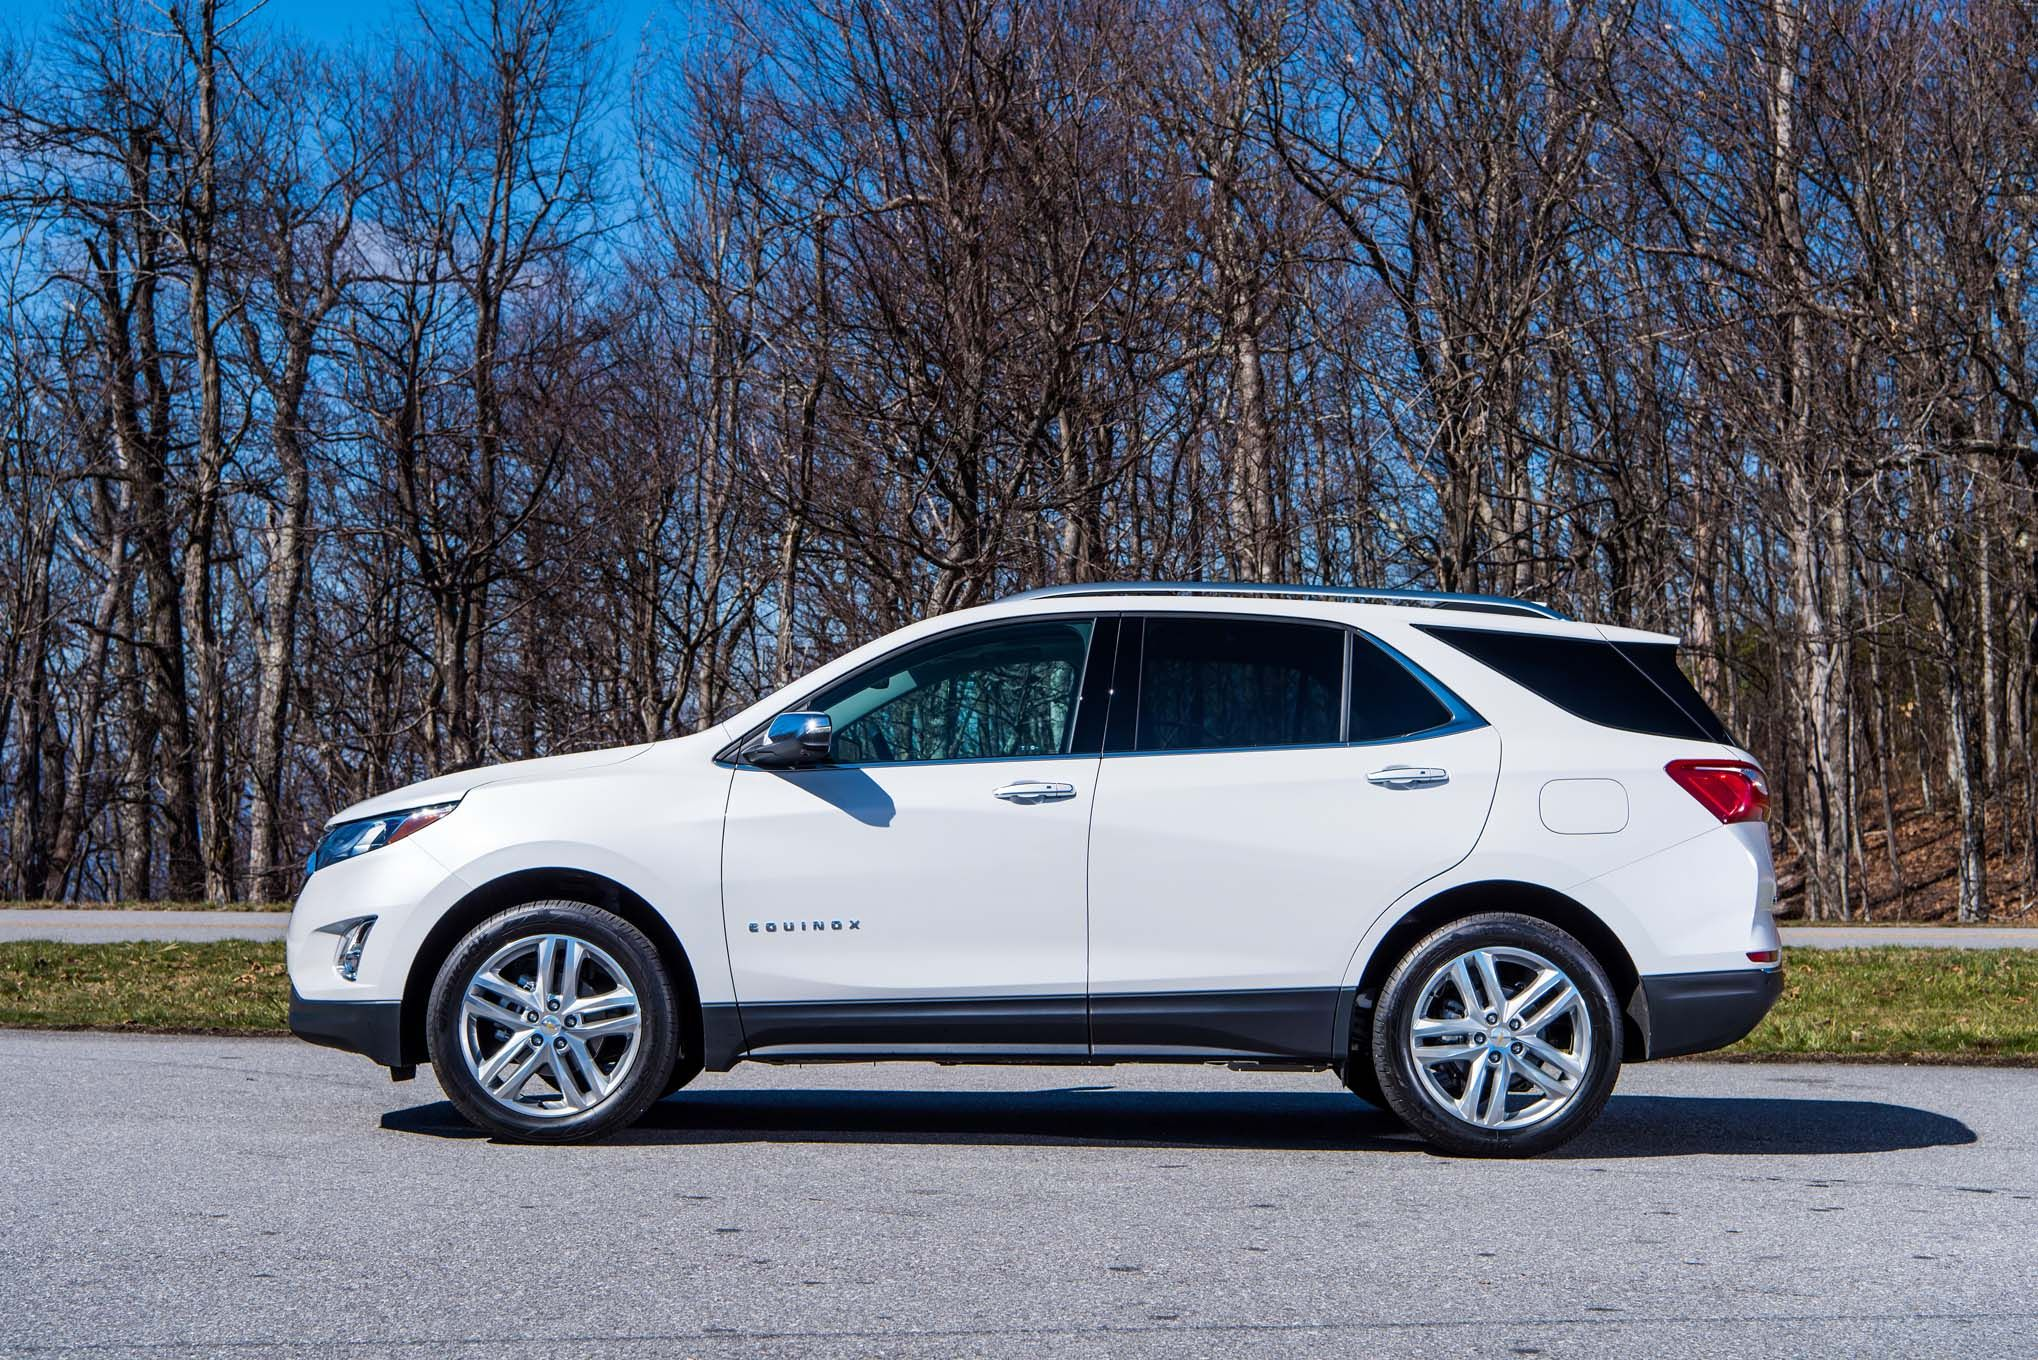 2018 Chevrolet Equinox Review Consumer Reports More Details At Westside Chevrolet Dealership Houston Tx With Images Chevy Equinox Equinox Suv Chevrolet Equinox